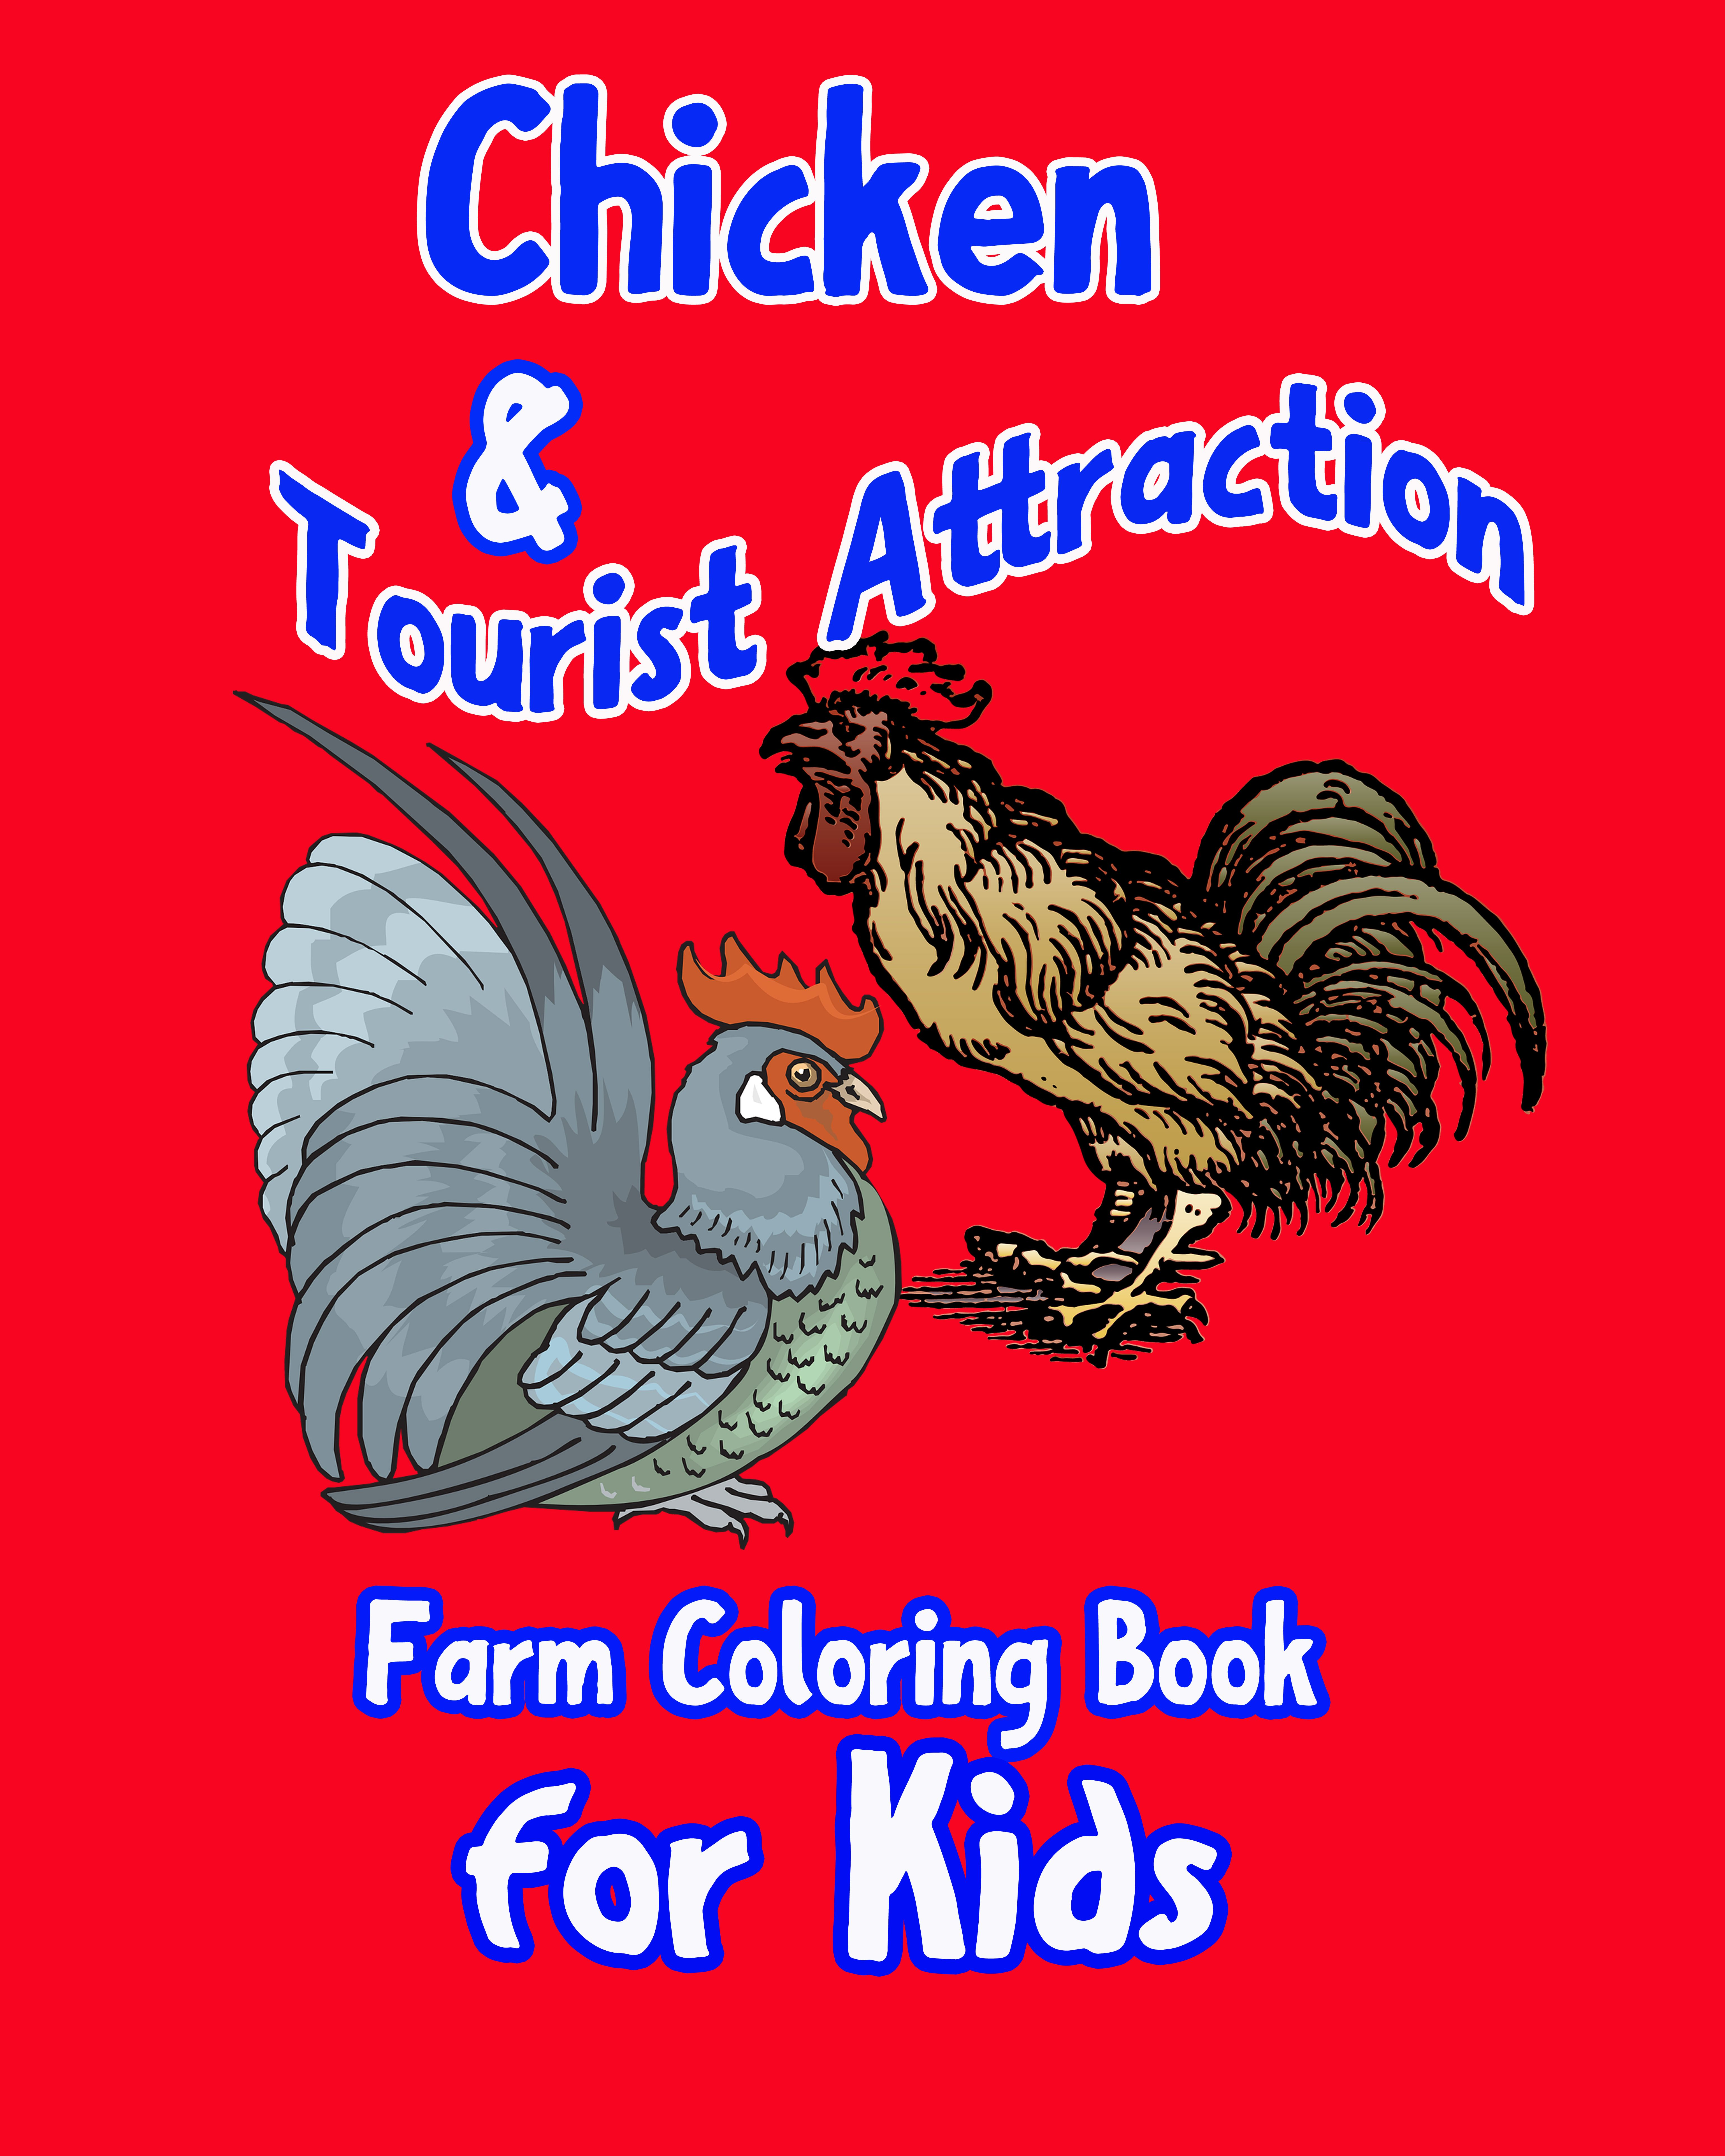 Do you know  kids always love animals?   Spark  your kid's talent and creativity  with work of art is a good idea. Let's encourage them color many kinds of picture. Coloring generate creativity that will turn to be a great idea which will change the world.  This coloring book is a great value at several pages. Each page contains one or more high quality  images for children to generate their creativity by color it.